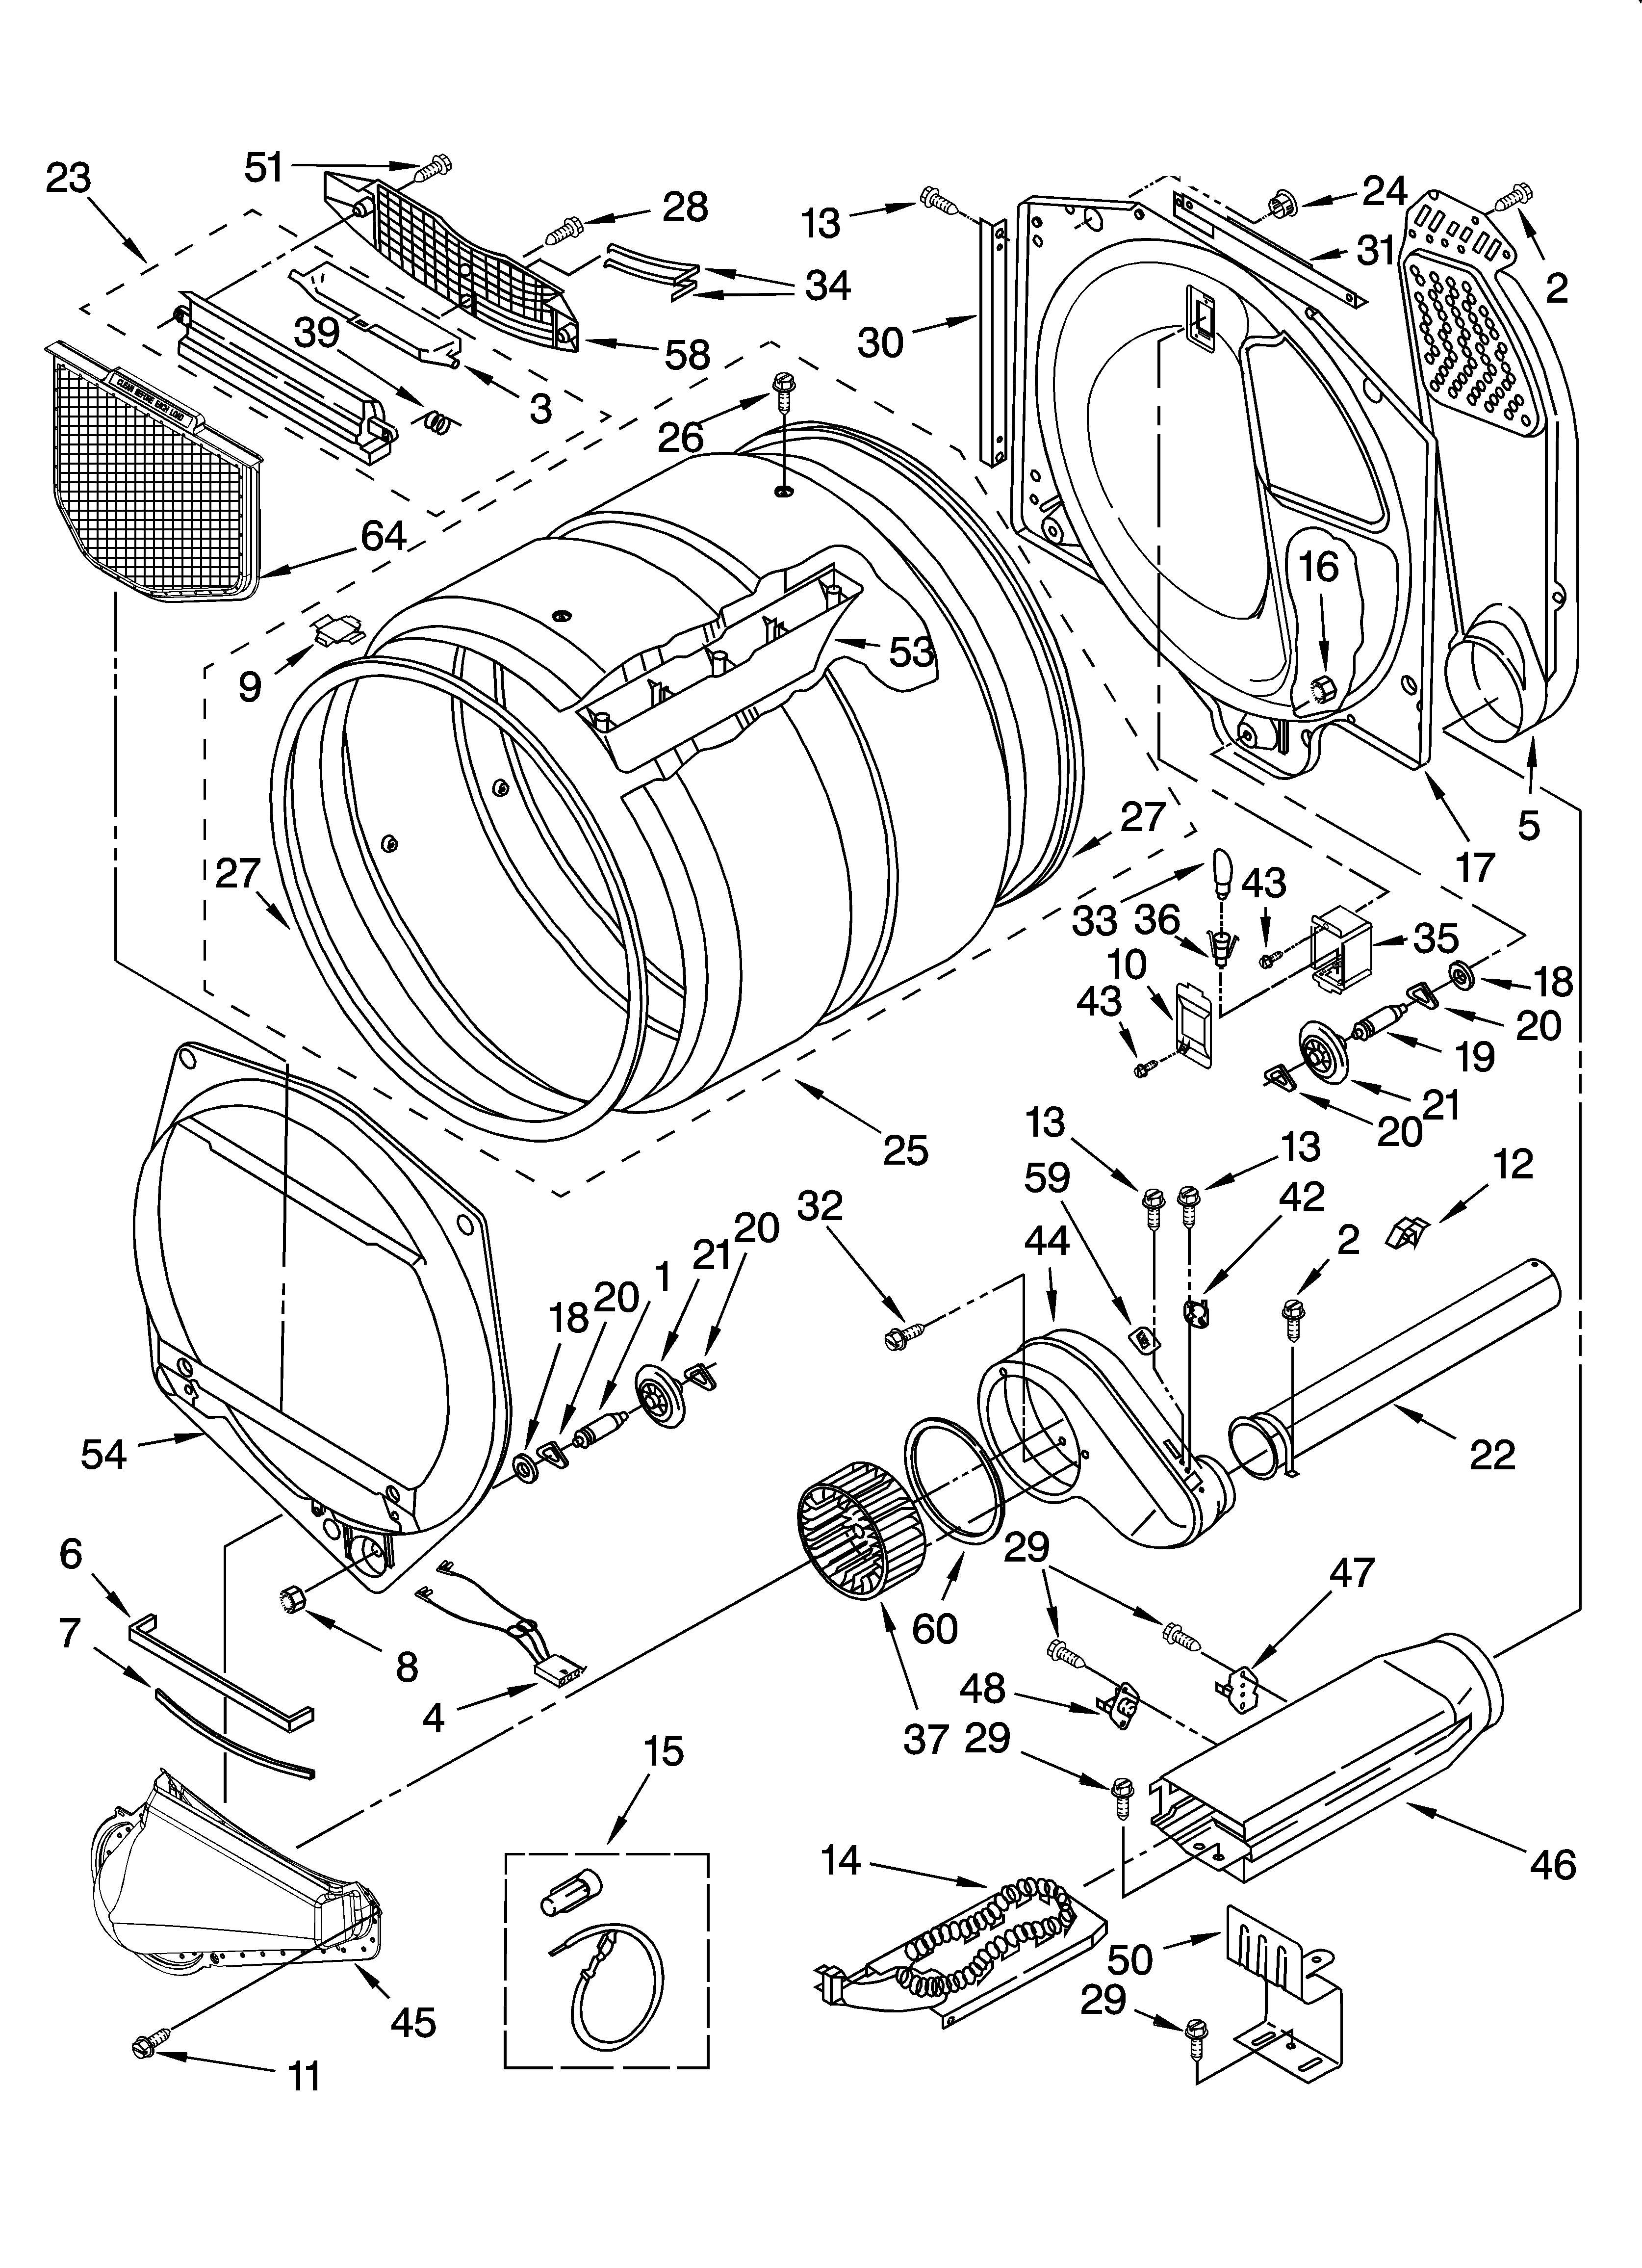 Wiring Diagram For Whirlpool Duet Dryer Heating Element from www.genuinereplacementparts.com